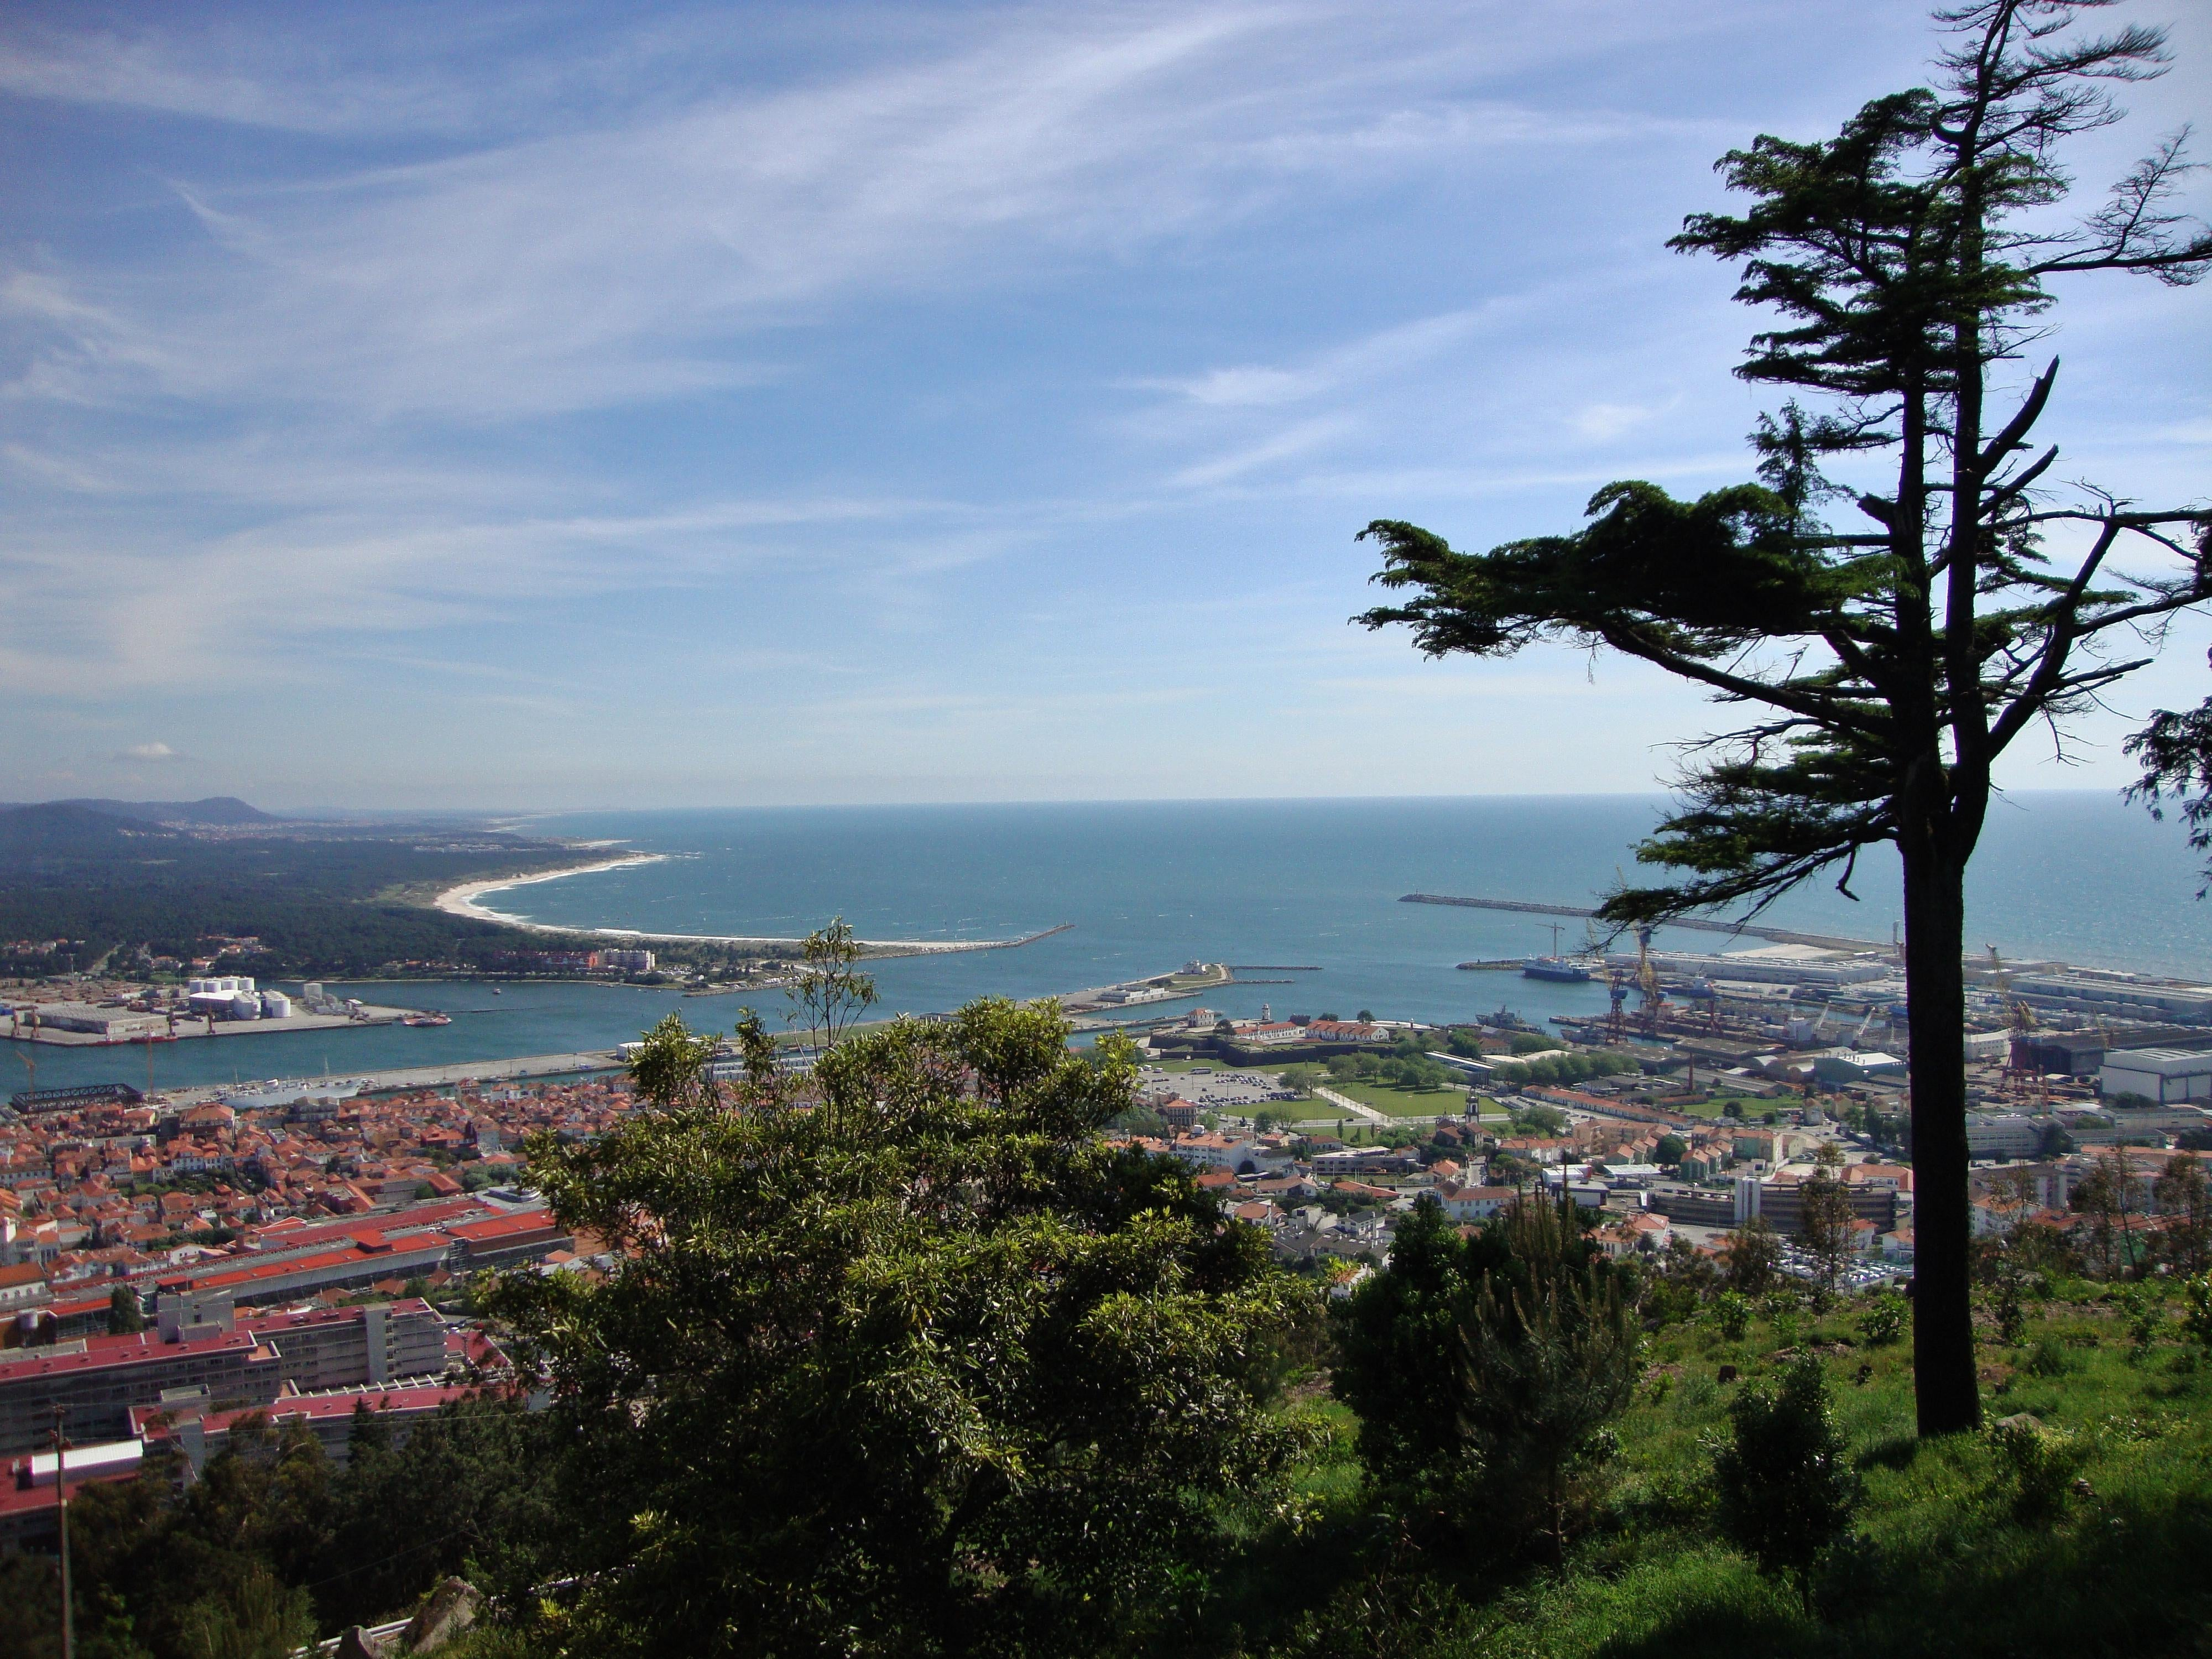 viana do castelo girls Book your tickets online for the top things to do in viana do castelo, portugal on tripadvisor: see 4,748 traveler reviews and photos of viana do castelo tourist attractions.